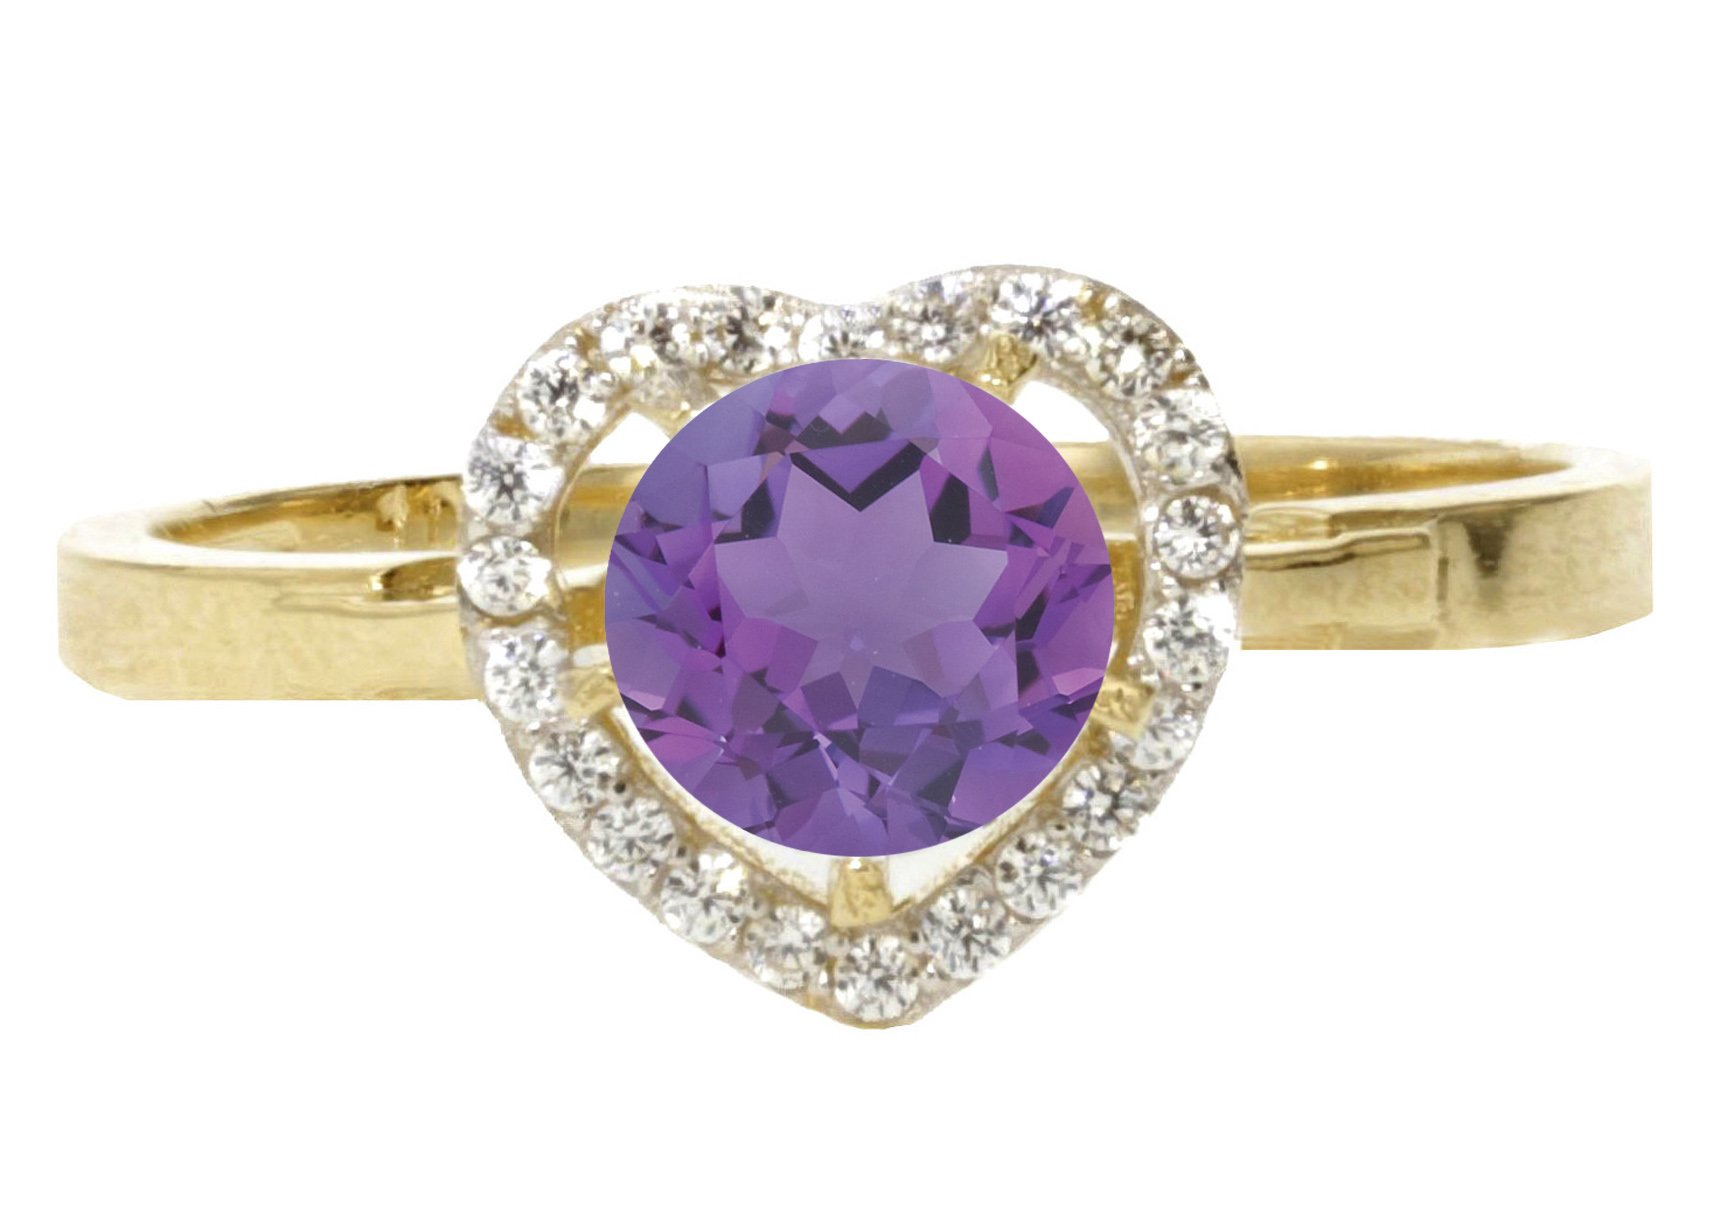 14k Yellow Gold Faceted Natural Genuine Purple Amethyst Round Solitaire Halo Heart Promise Ring Size 10.5